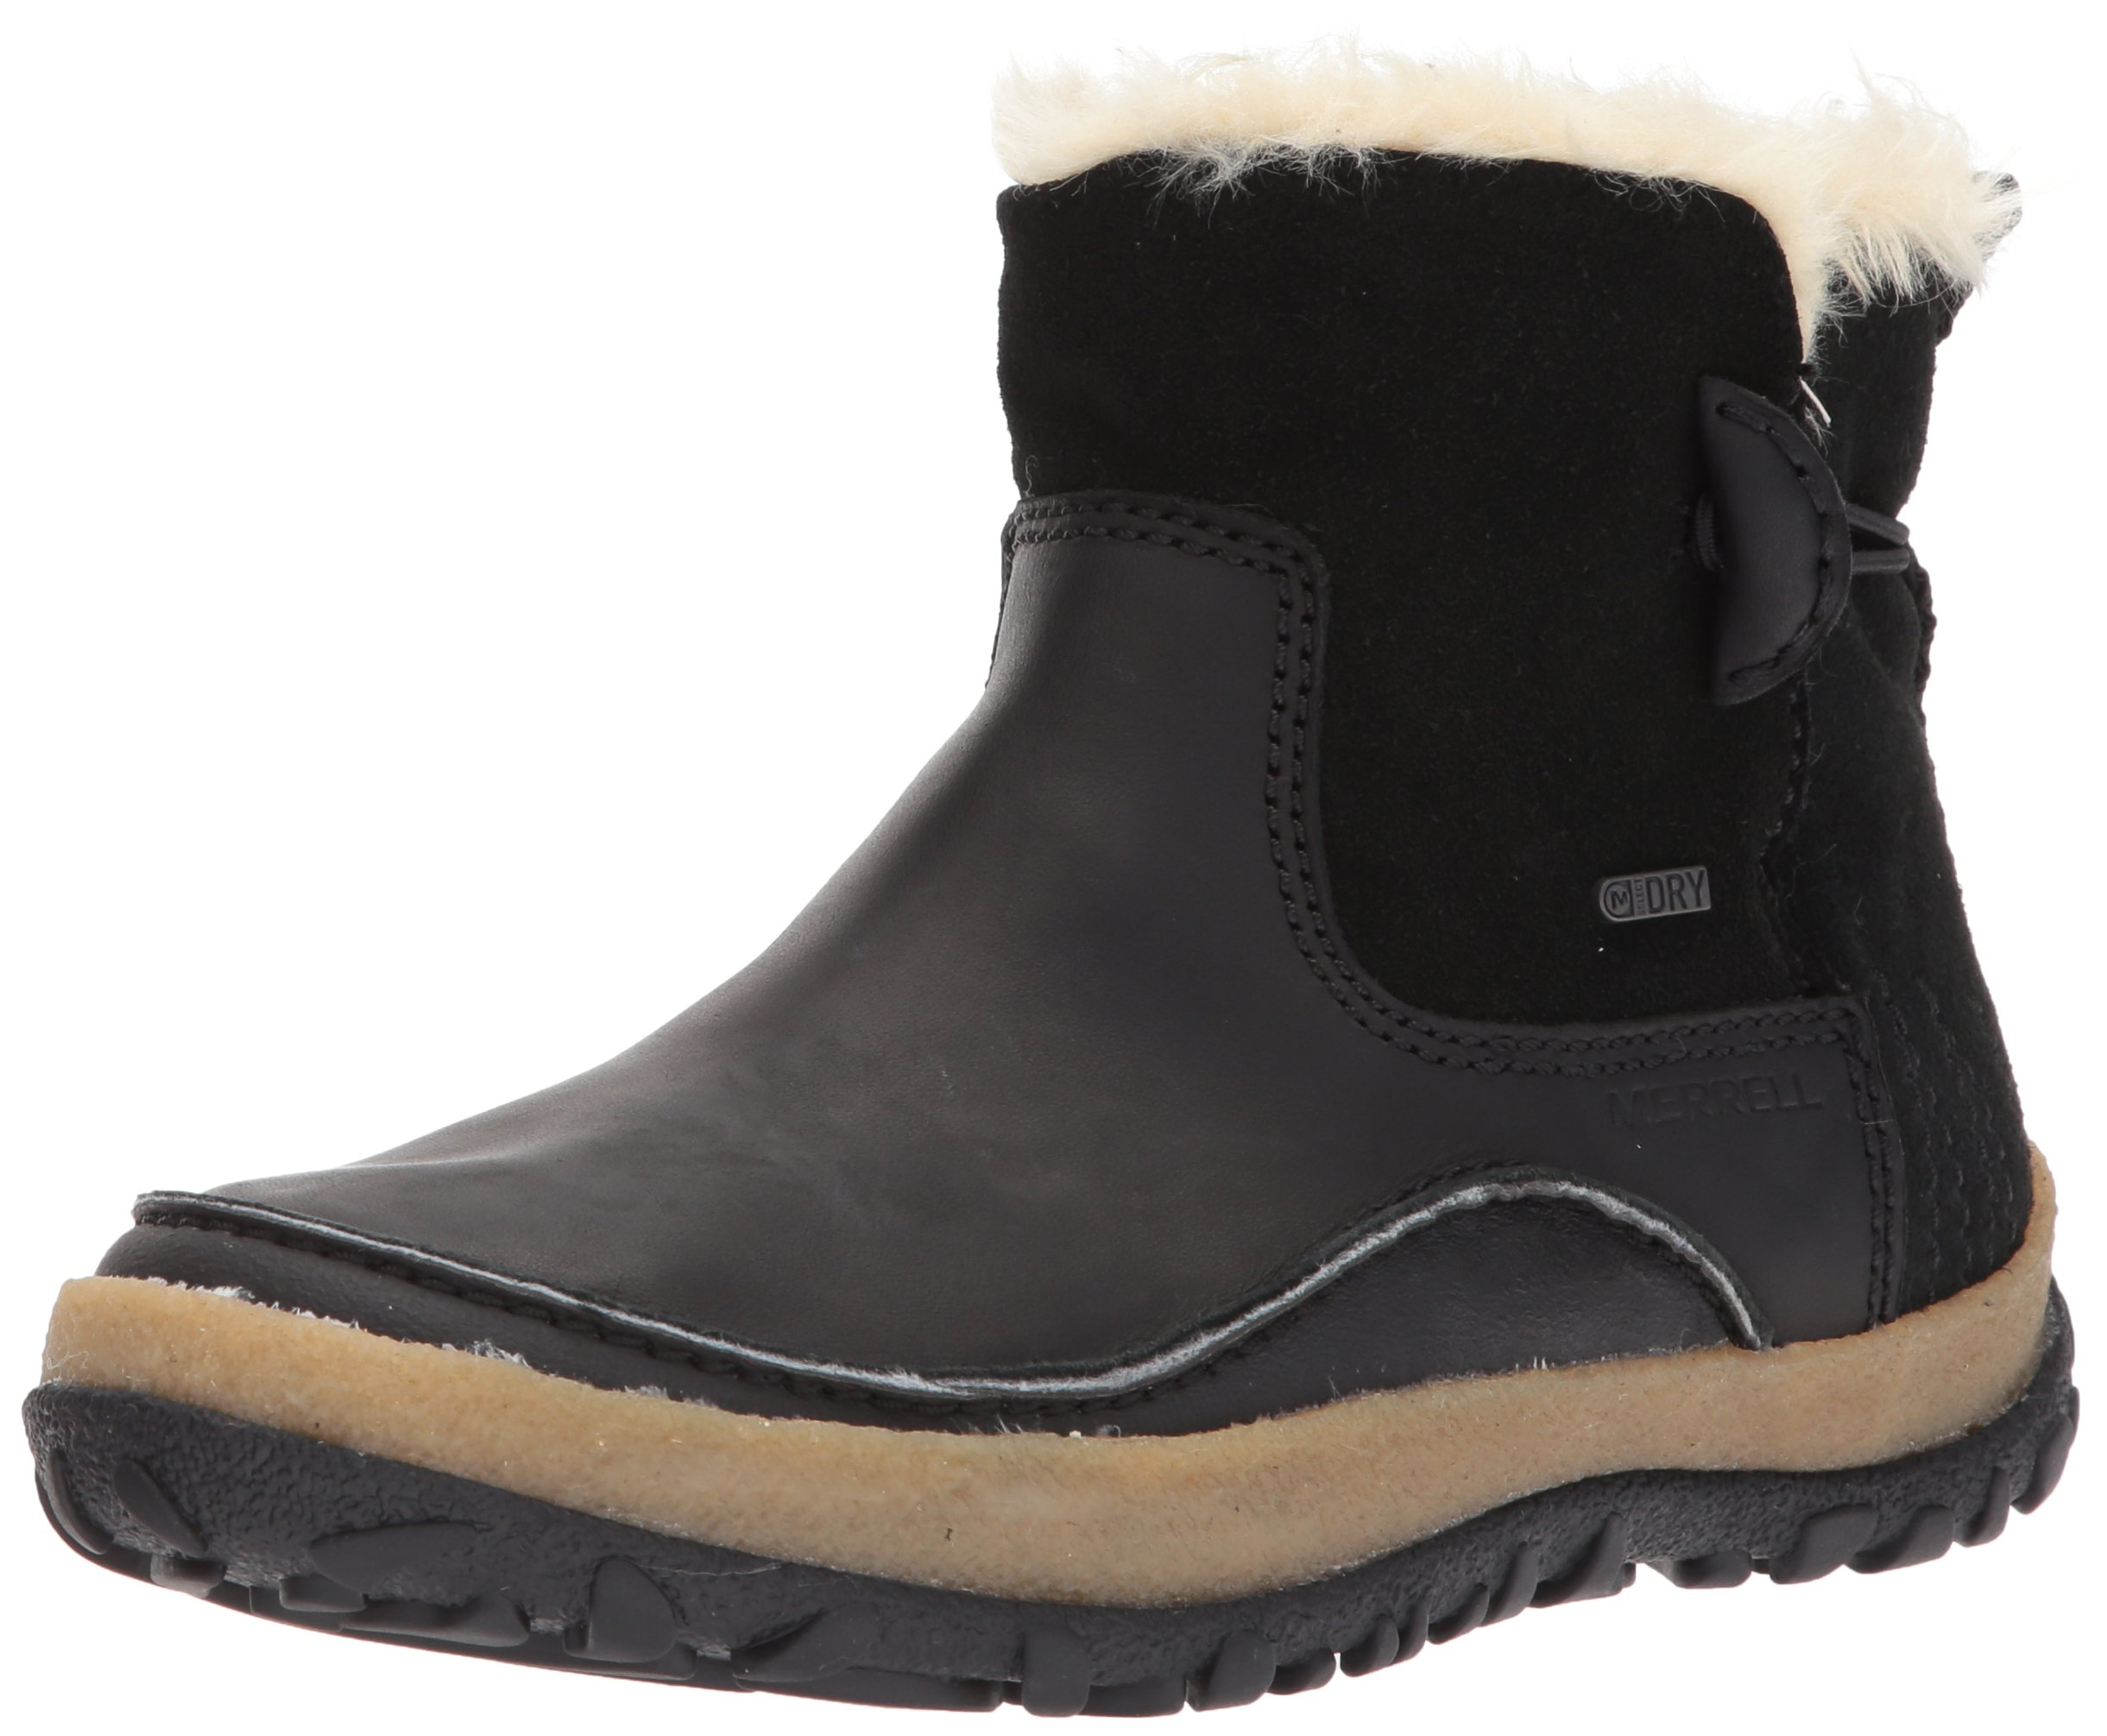 Merrell Women's Tremblant Pull On Polar Waterproof Snow Boot, Black, 10 M US